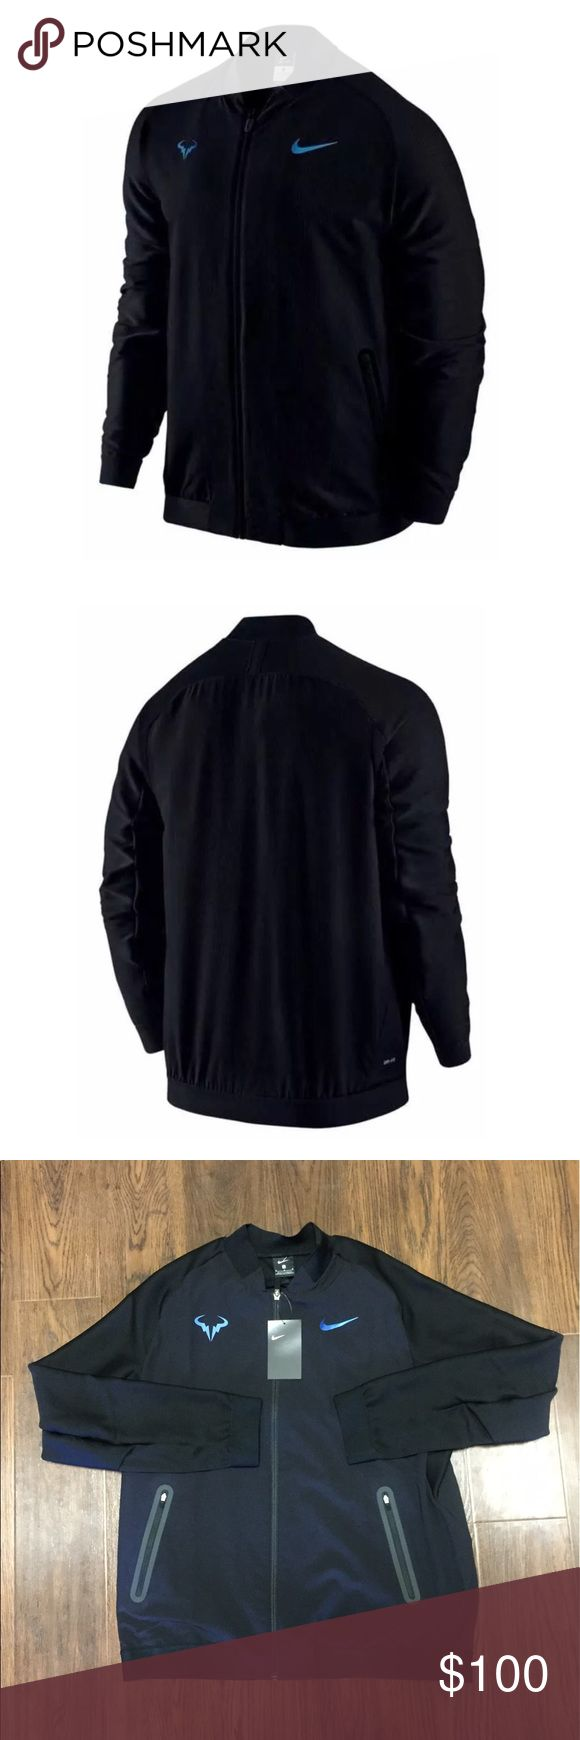 Nike Rafa Rafael Nadal Premier Tennis Jacket NWT Color: Black/Blue  Style Code : 728986-010  Fabric : 89% Polyester/11% Spandex   The Nike Rafa Jacket features a breathable mesh lining with Dri-FIT technology to keep you cool and comfortable during warm ups or cooler days on the court.  Made of a premium woven material in the main body lined with a Dri-FIT mesh.  Sleeves are designed with rib that provides a full range of motion during a warm up  Bonded zipper pockets for secure storage and…